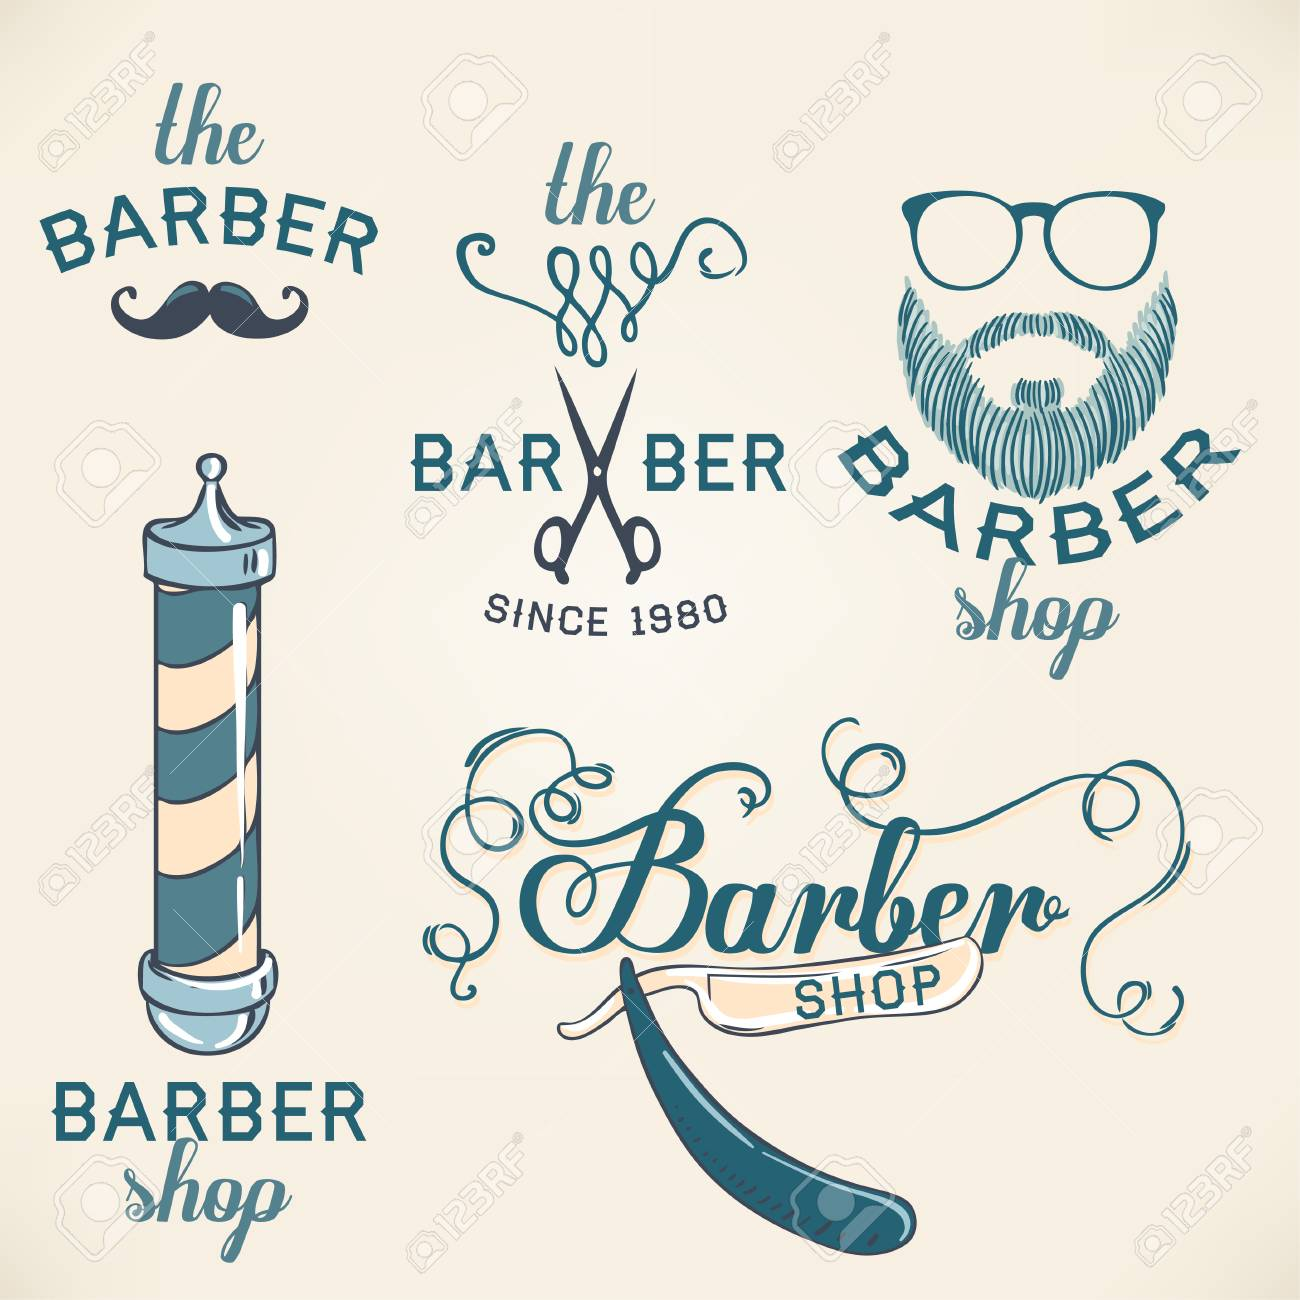 Hipster barber shop business card design template vector hipster barber shop business card design template vector illustration stock vector 43447971 reheart Image collections